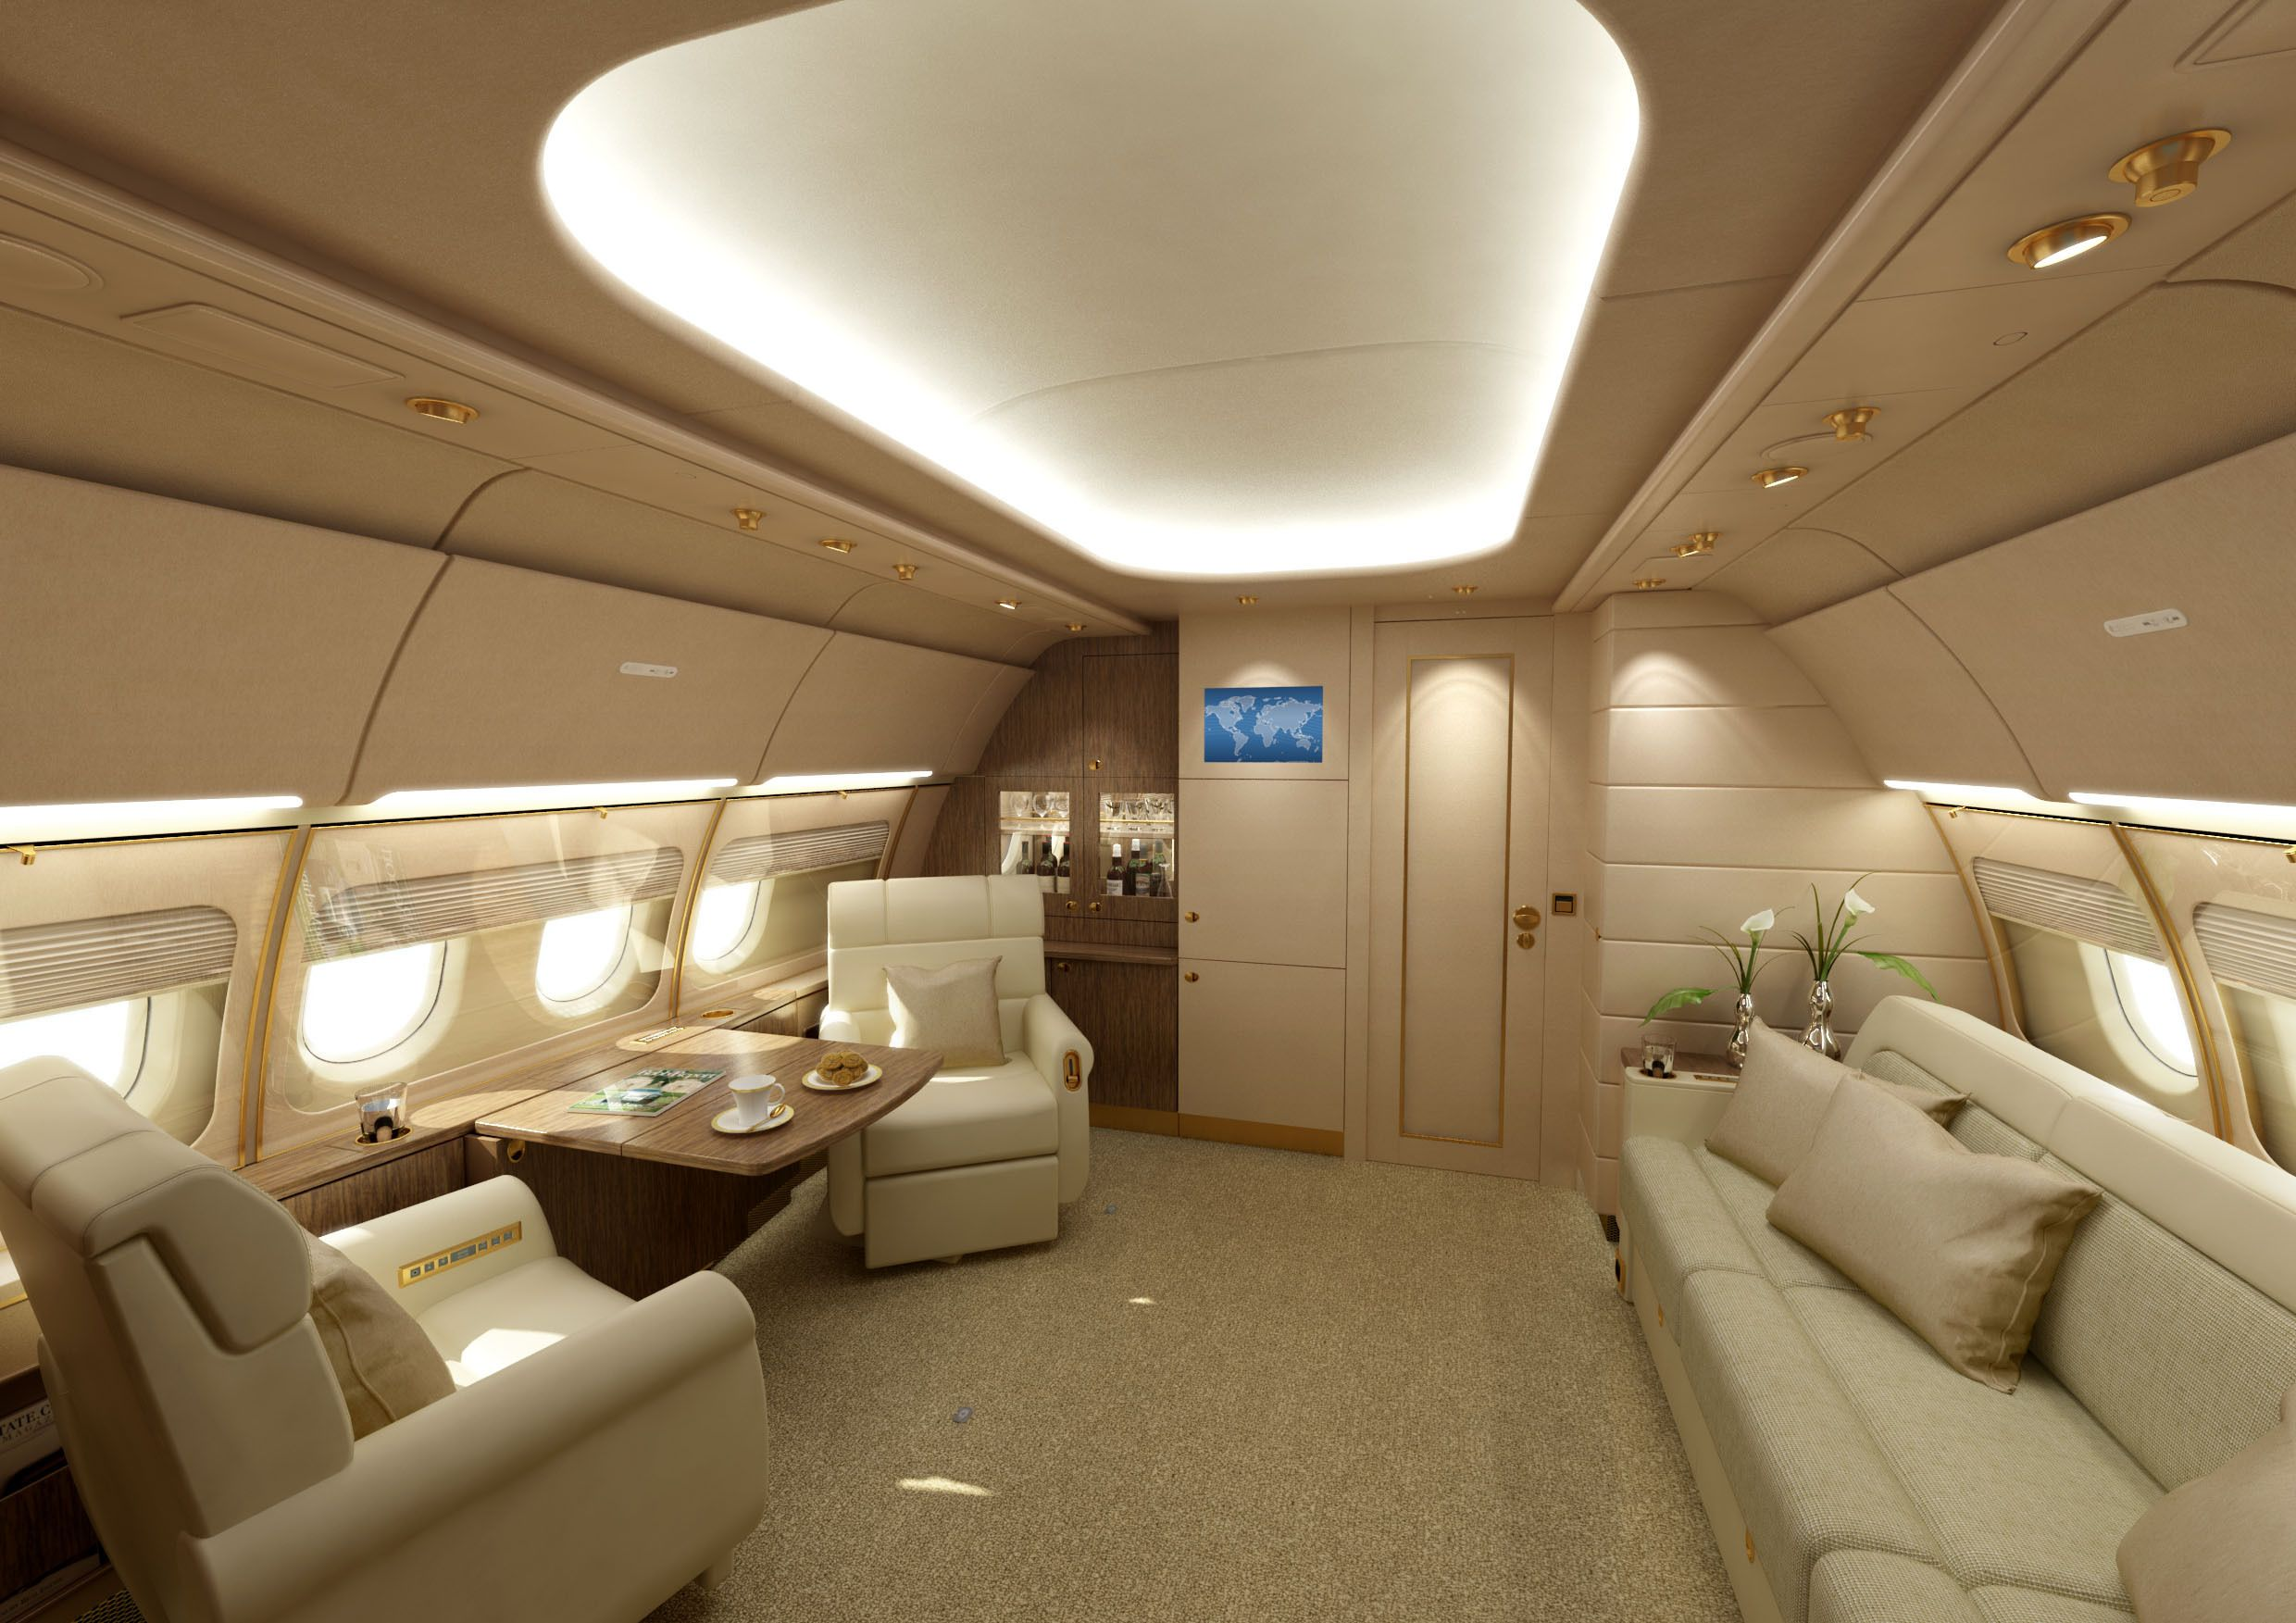 House Luxurious Interior Design Idea From Airplane Private Jet Interior Private Jet Luxury Private Jets